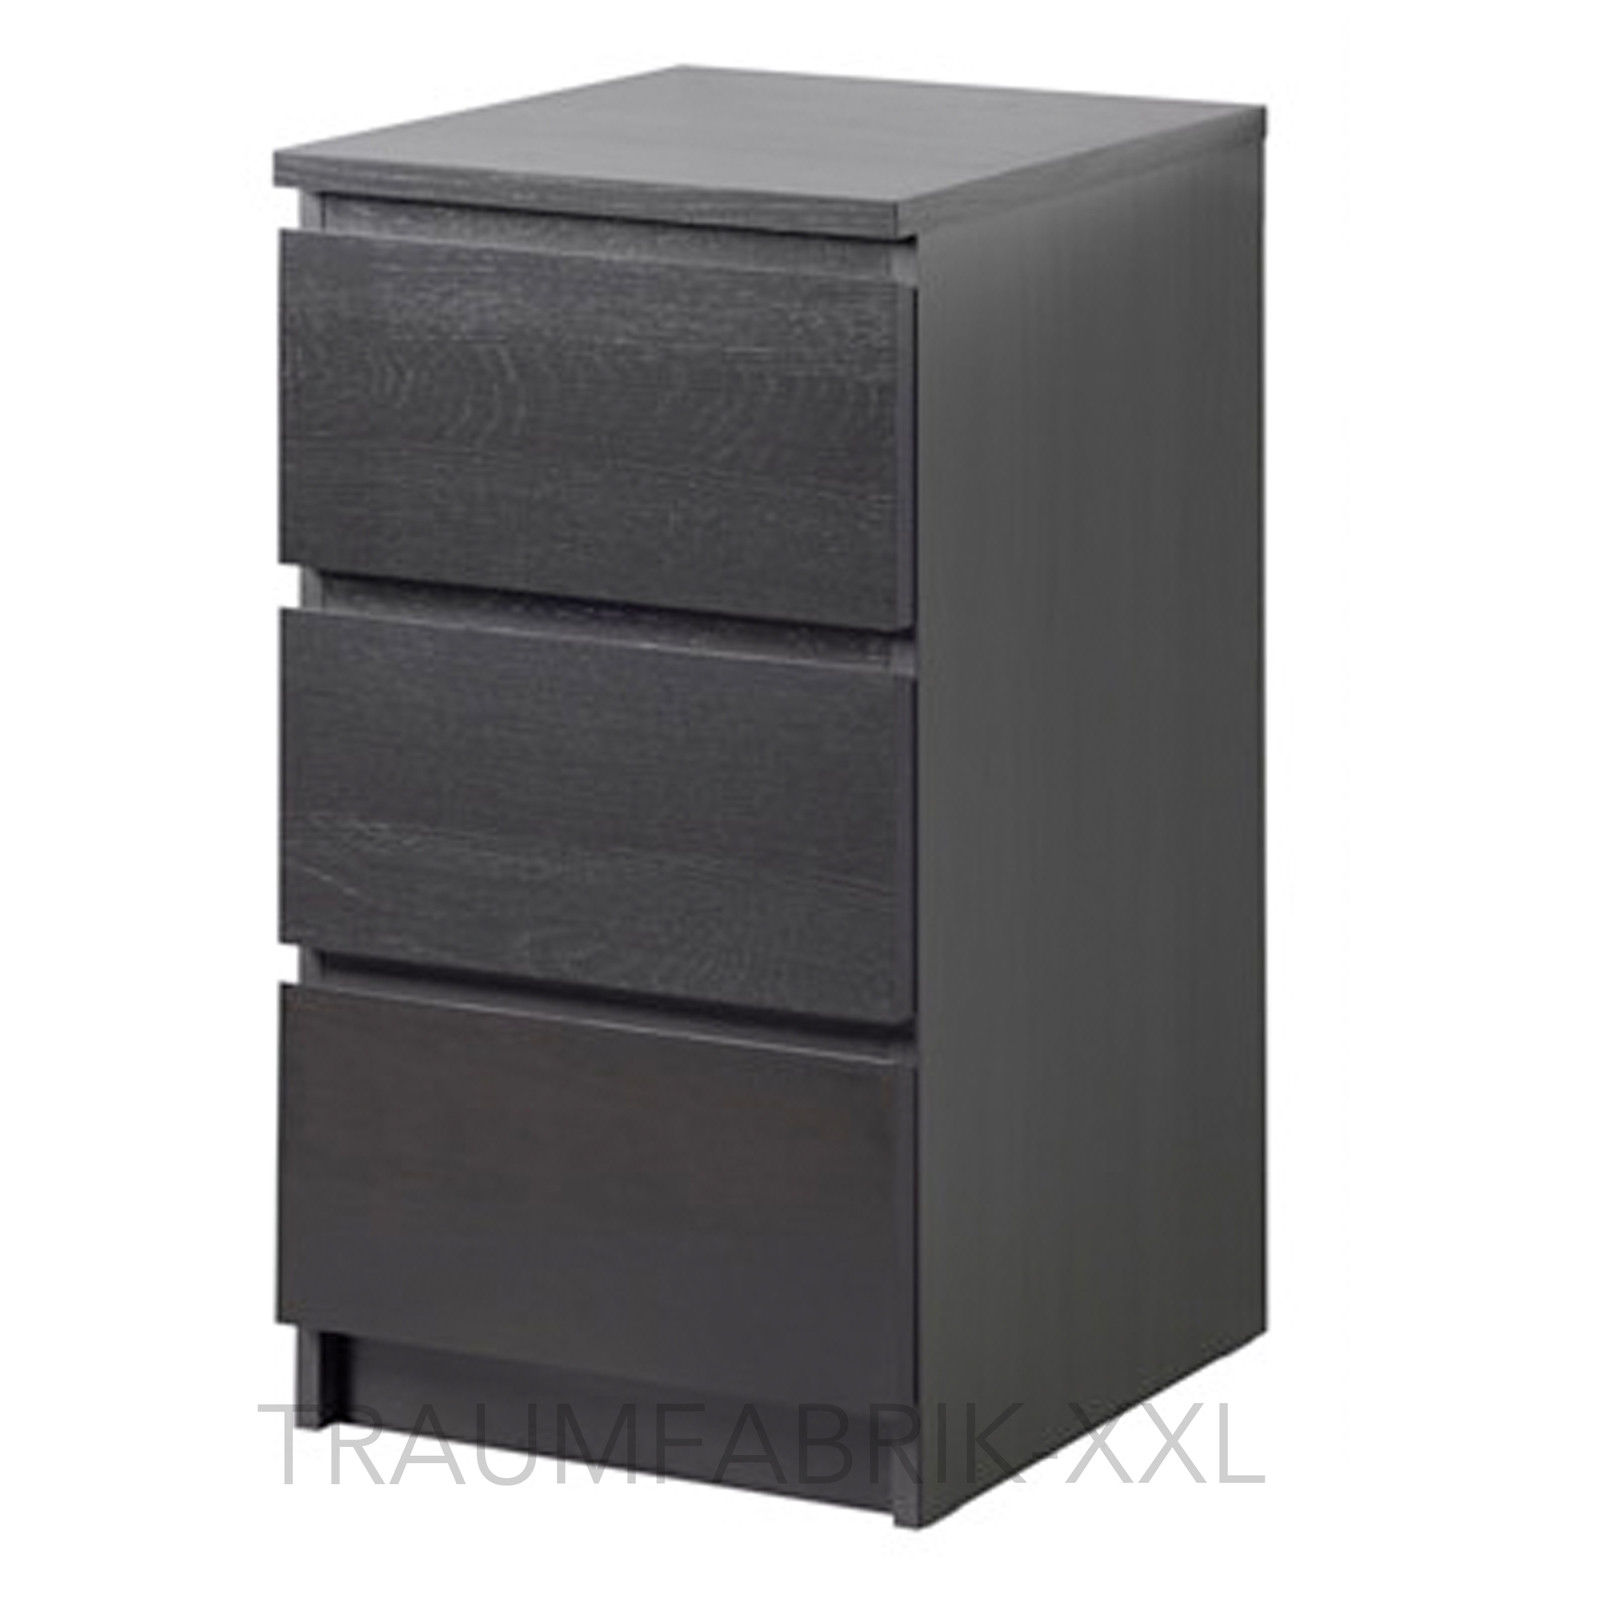 ikea malm kommode mit 3 schubladen schwarz nachtkonsole nachttisch schrank neu traumfabrik xxl. Black Bedroom Furniture Sets. Home Design Ideas